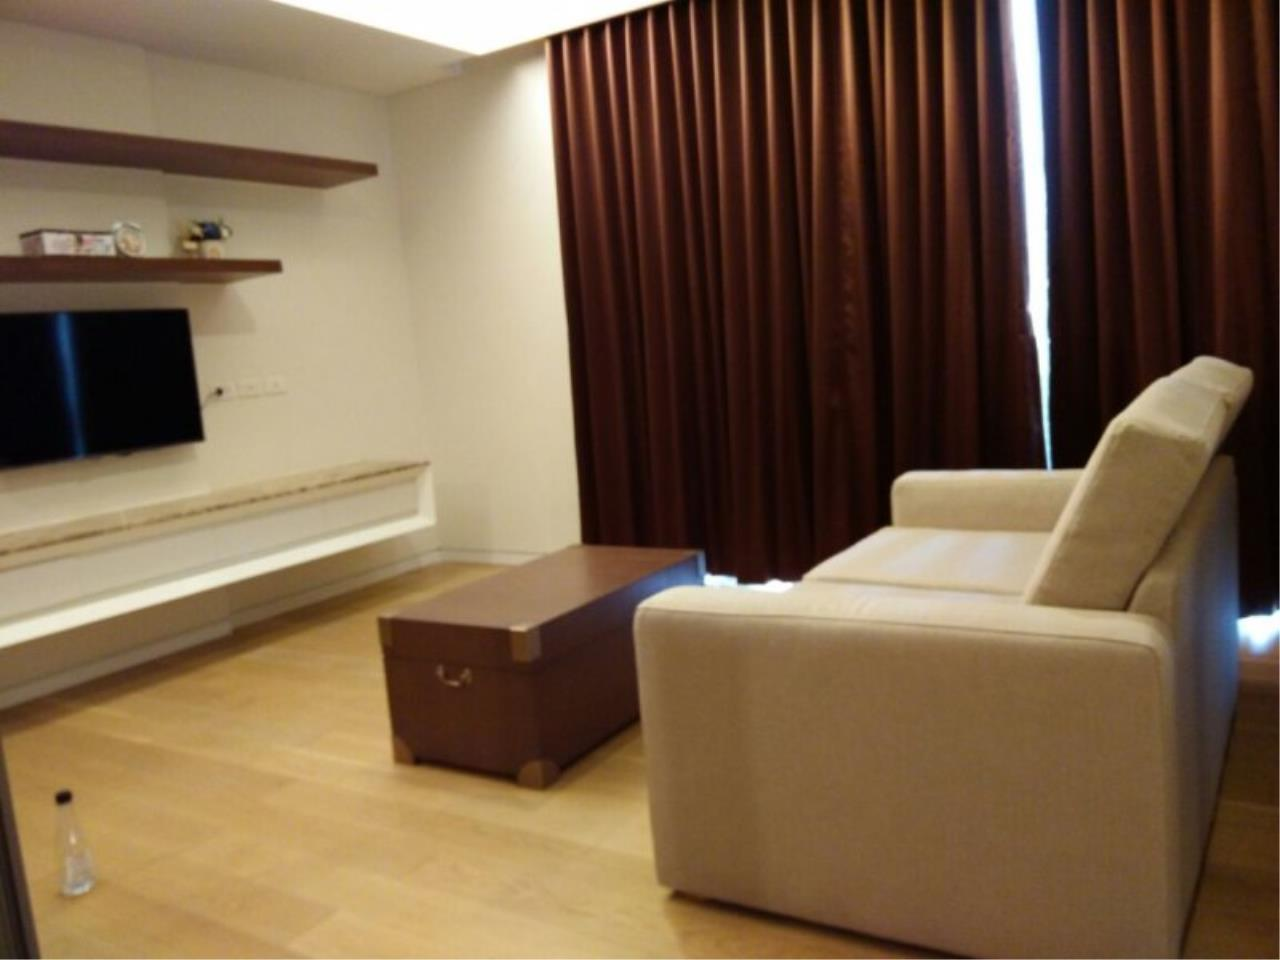 Piri Property Agency's Cozy 1 Bedroom in the Siamese 39 Building for rent 1